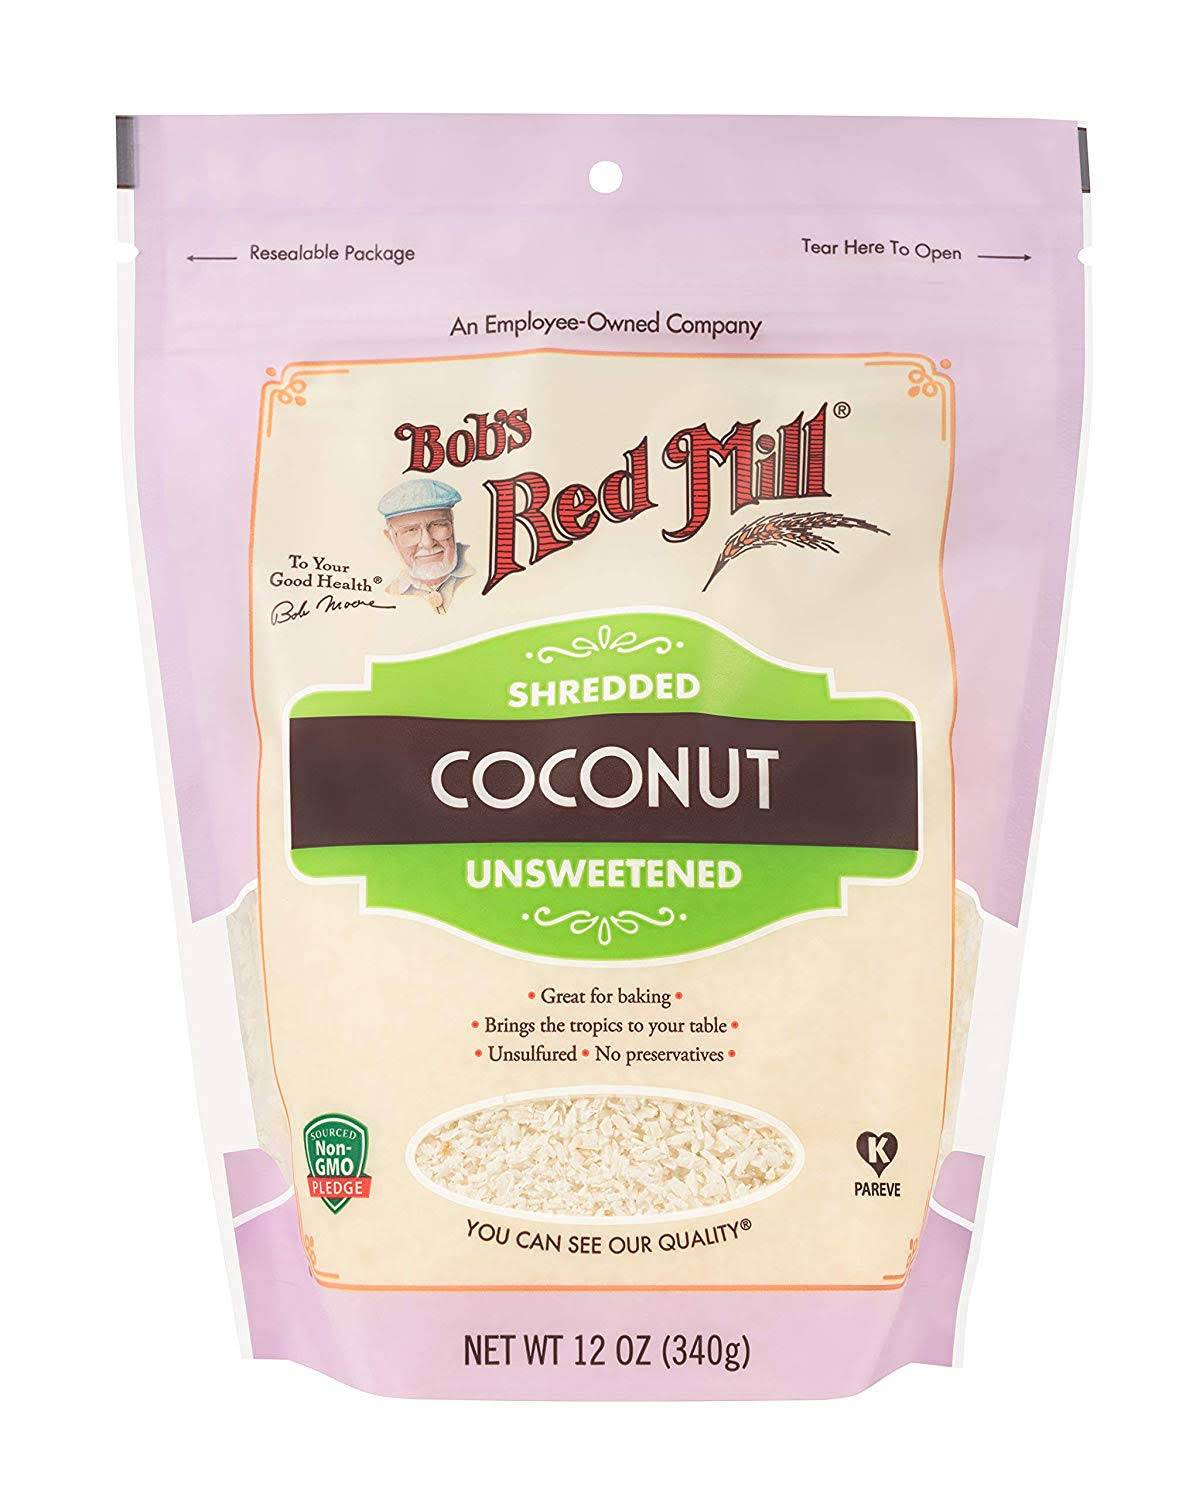 Bobs Red Mill Coconut, Unsweetened, Shredded - 12 oz